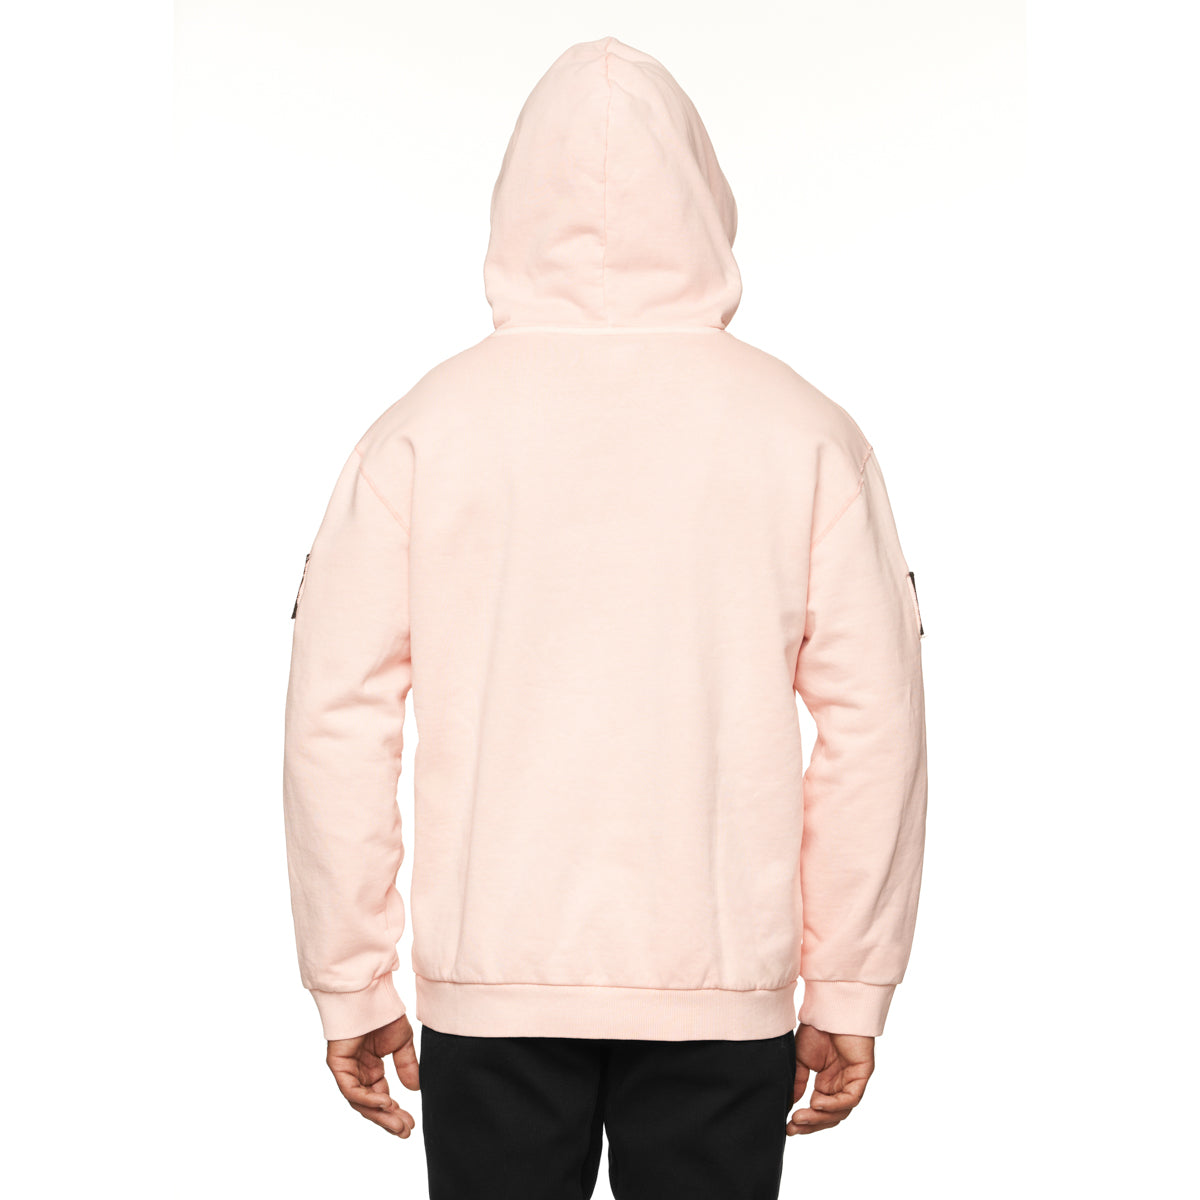 0302. Garment-Dyed Patch Hoodie - Faded Pink